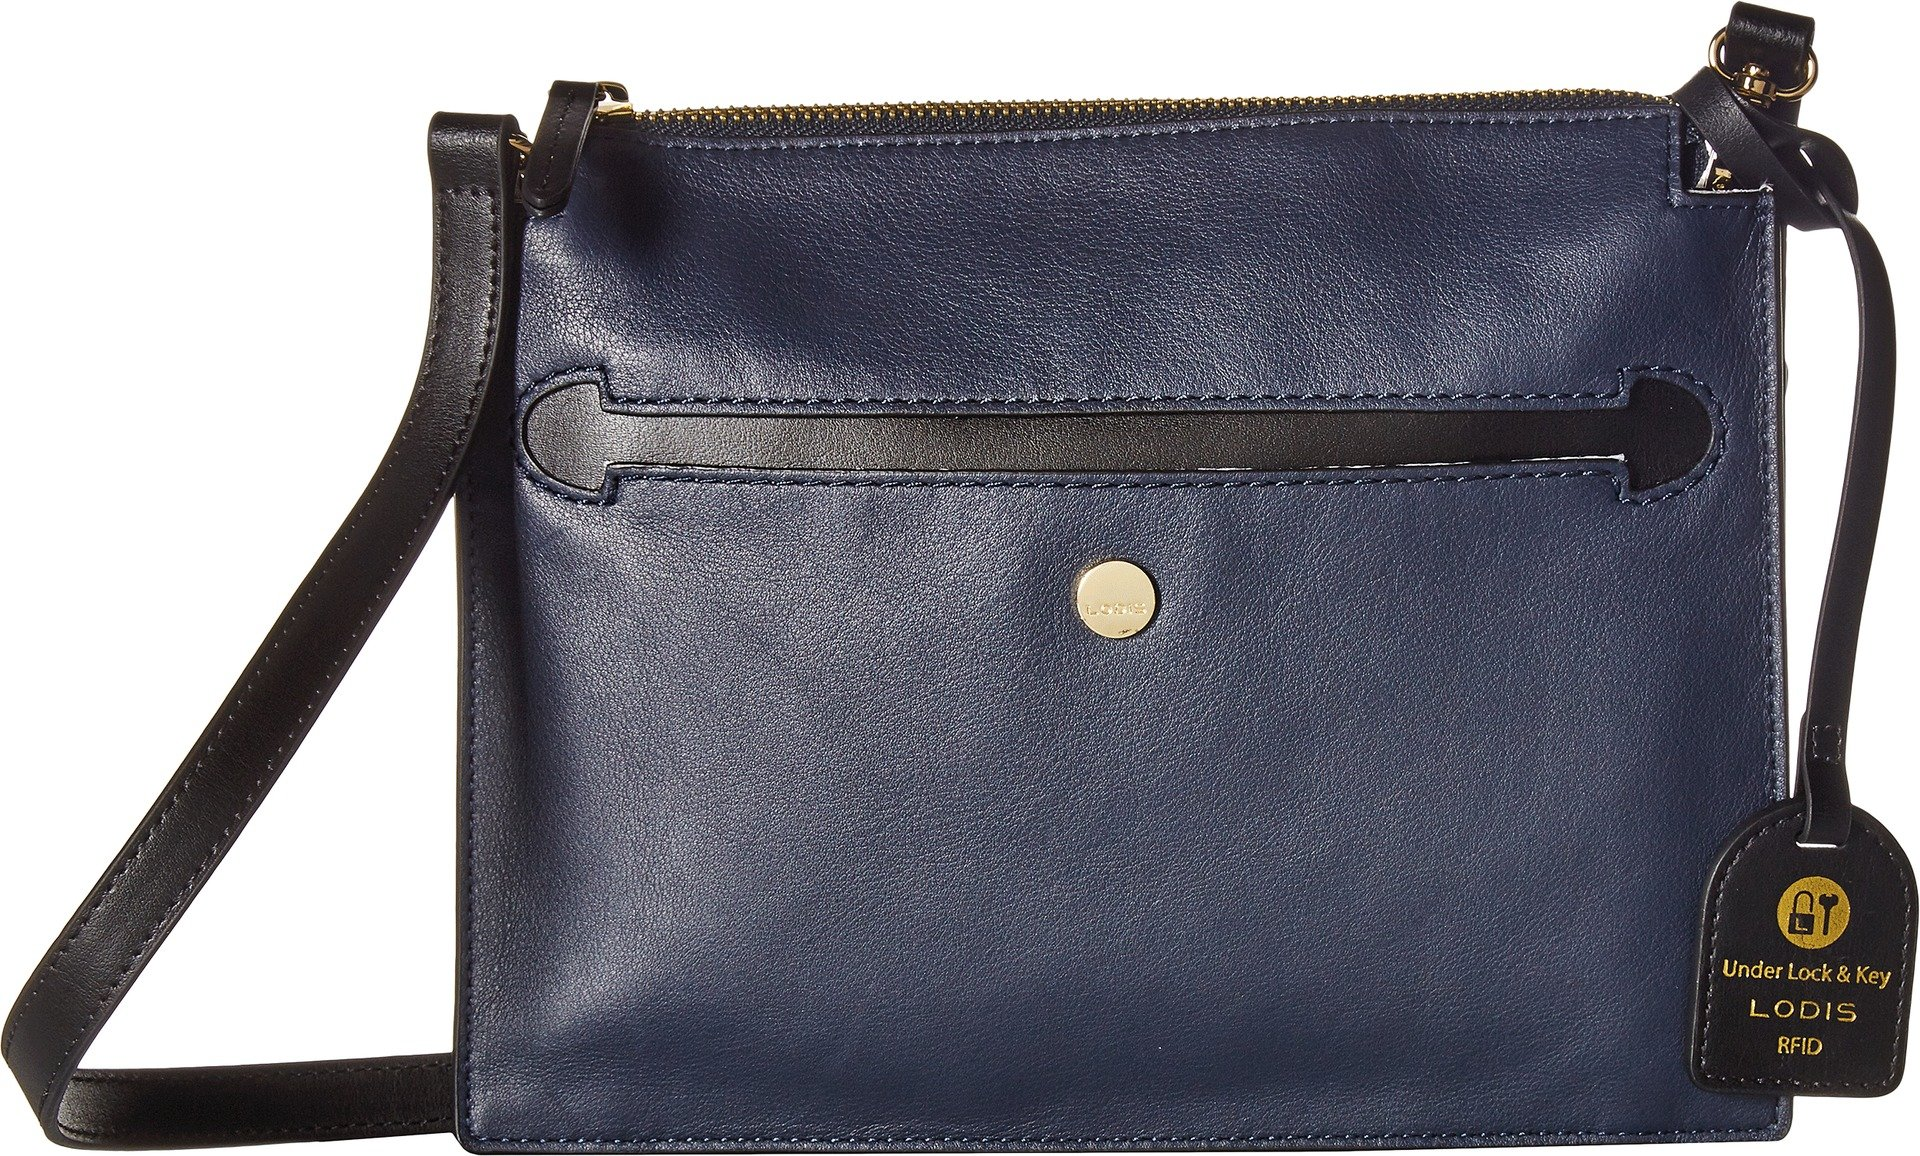 Lodis Downtown RFID Kay Accordion Crossbody (Navy/Black) by Lodis